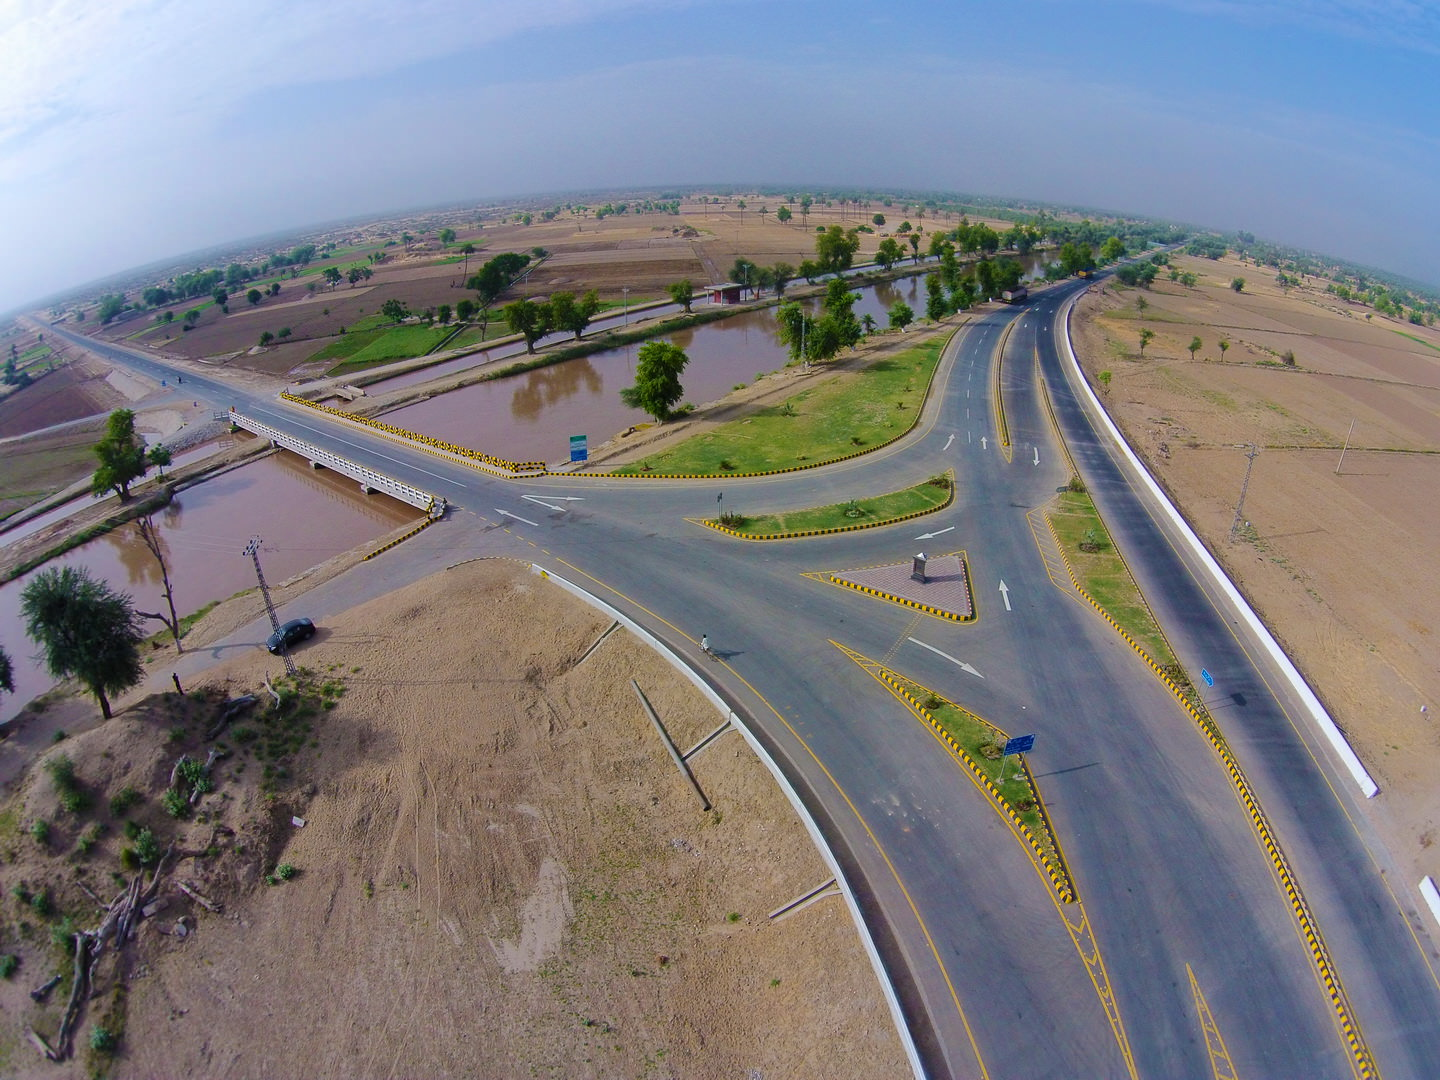 ACCESS ROAD TO QUAIDEAZAM SOLAR